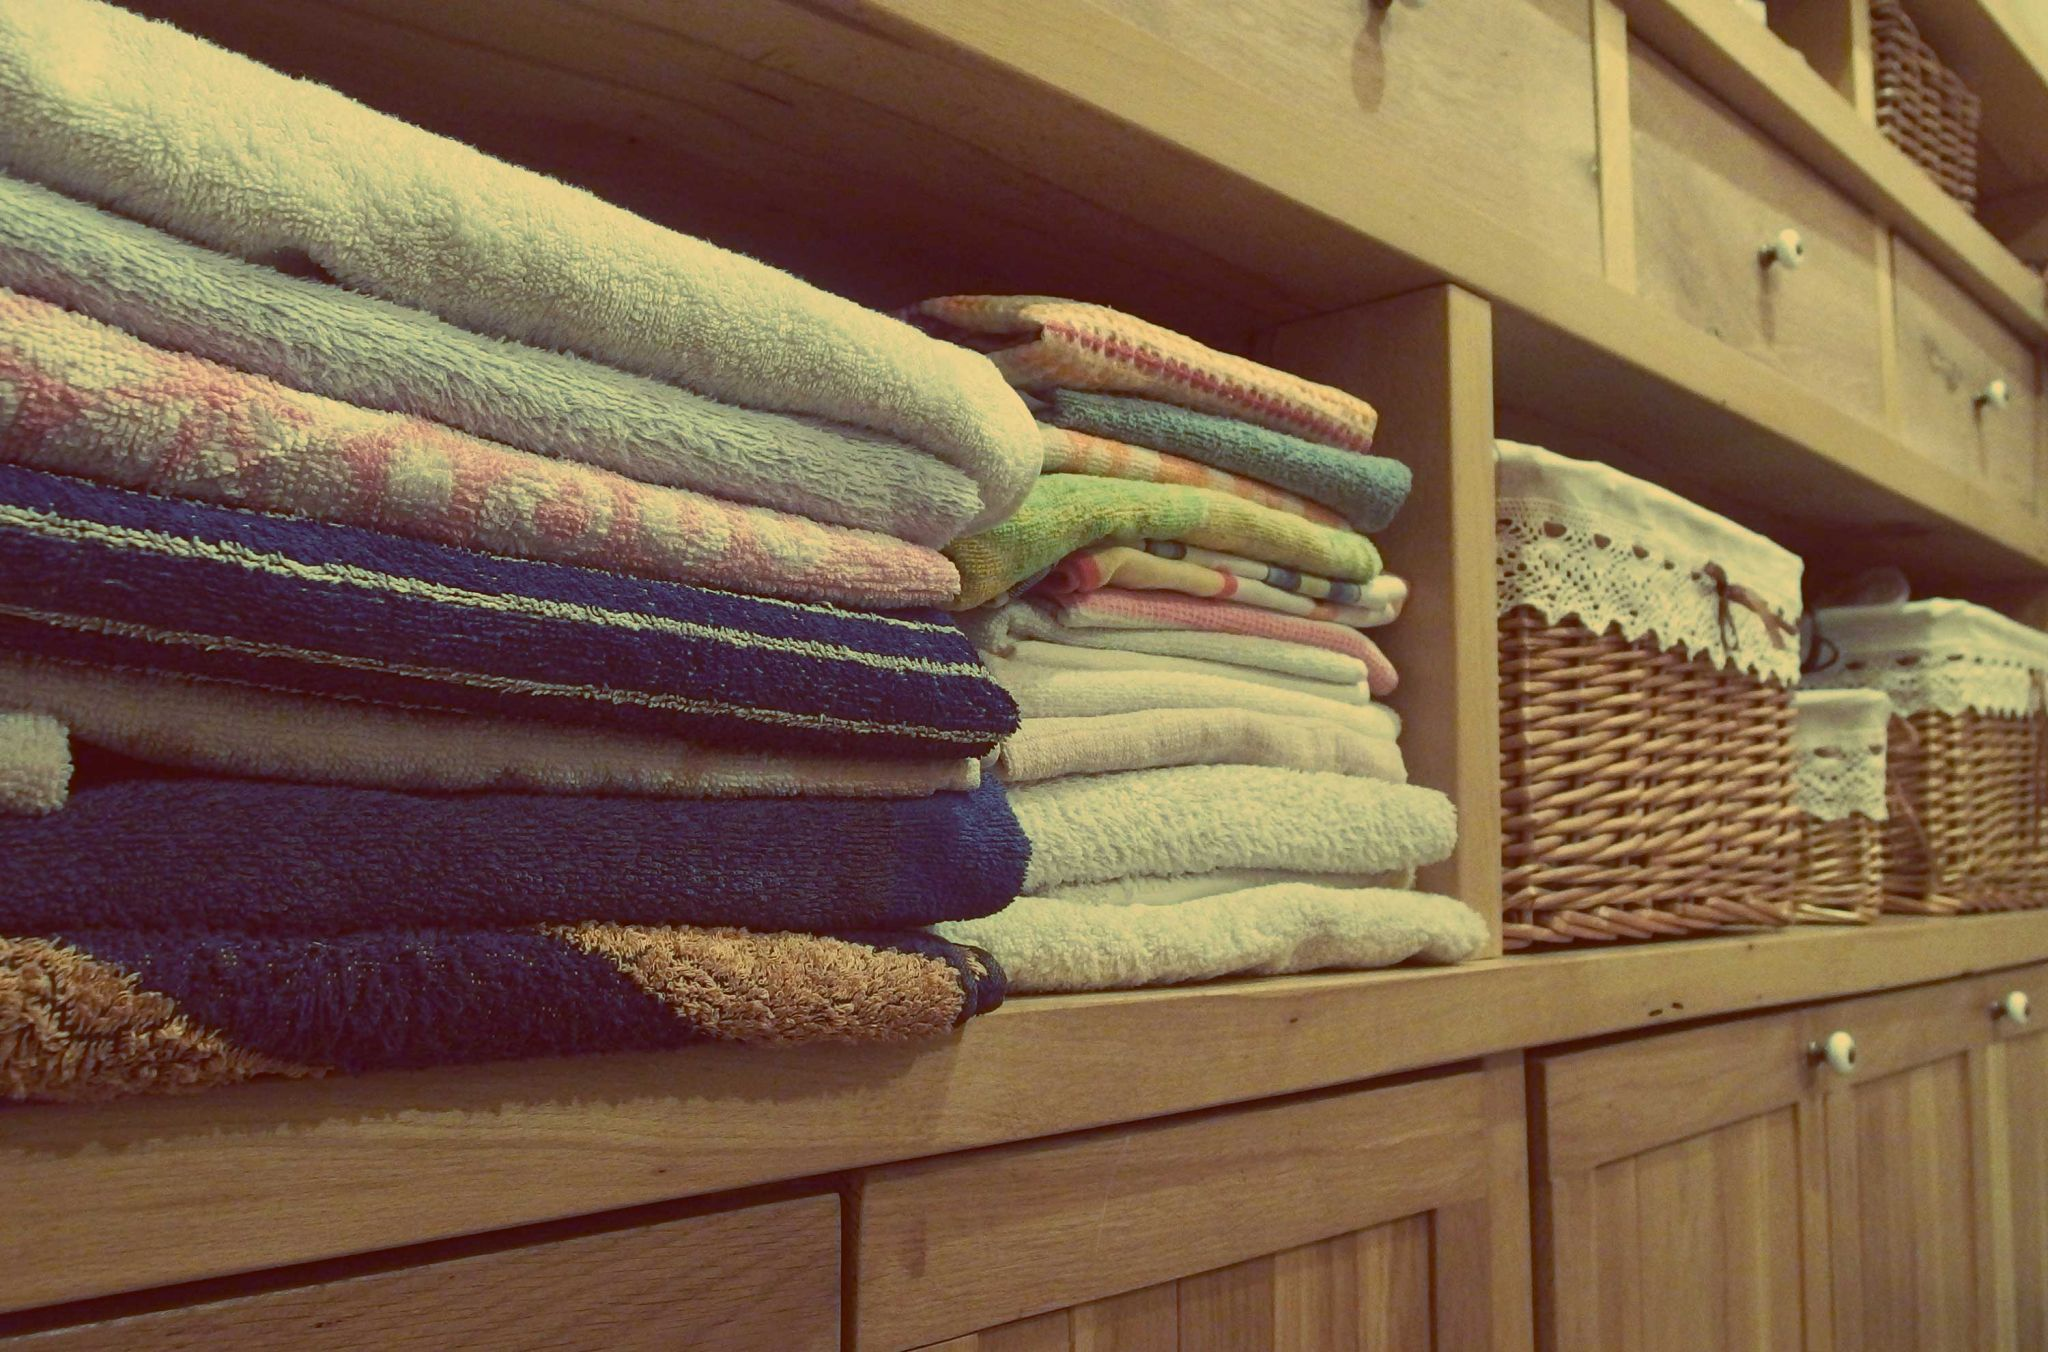 Linen neatly organised with storage baskets - decor ideas for the family home